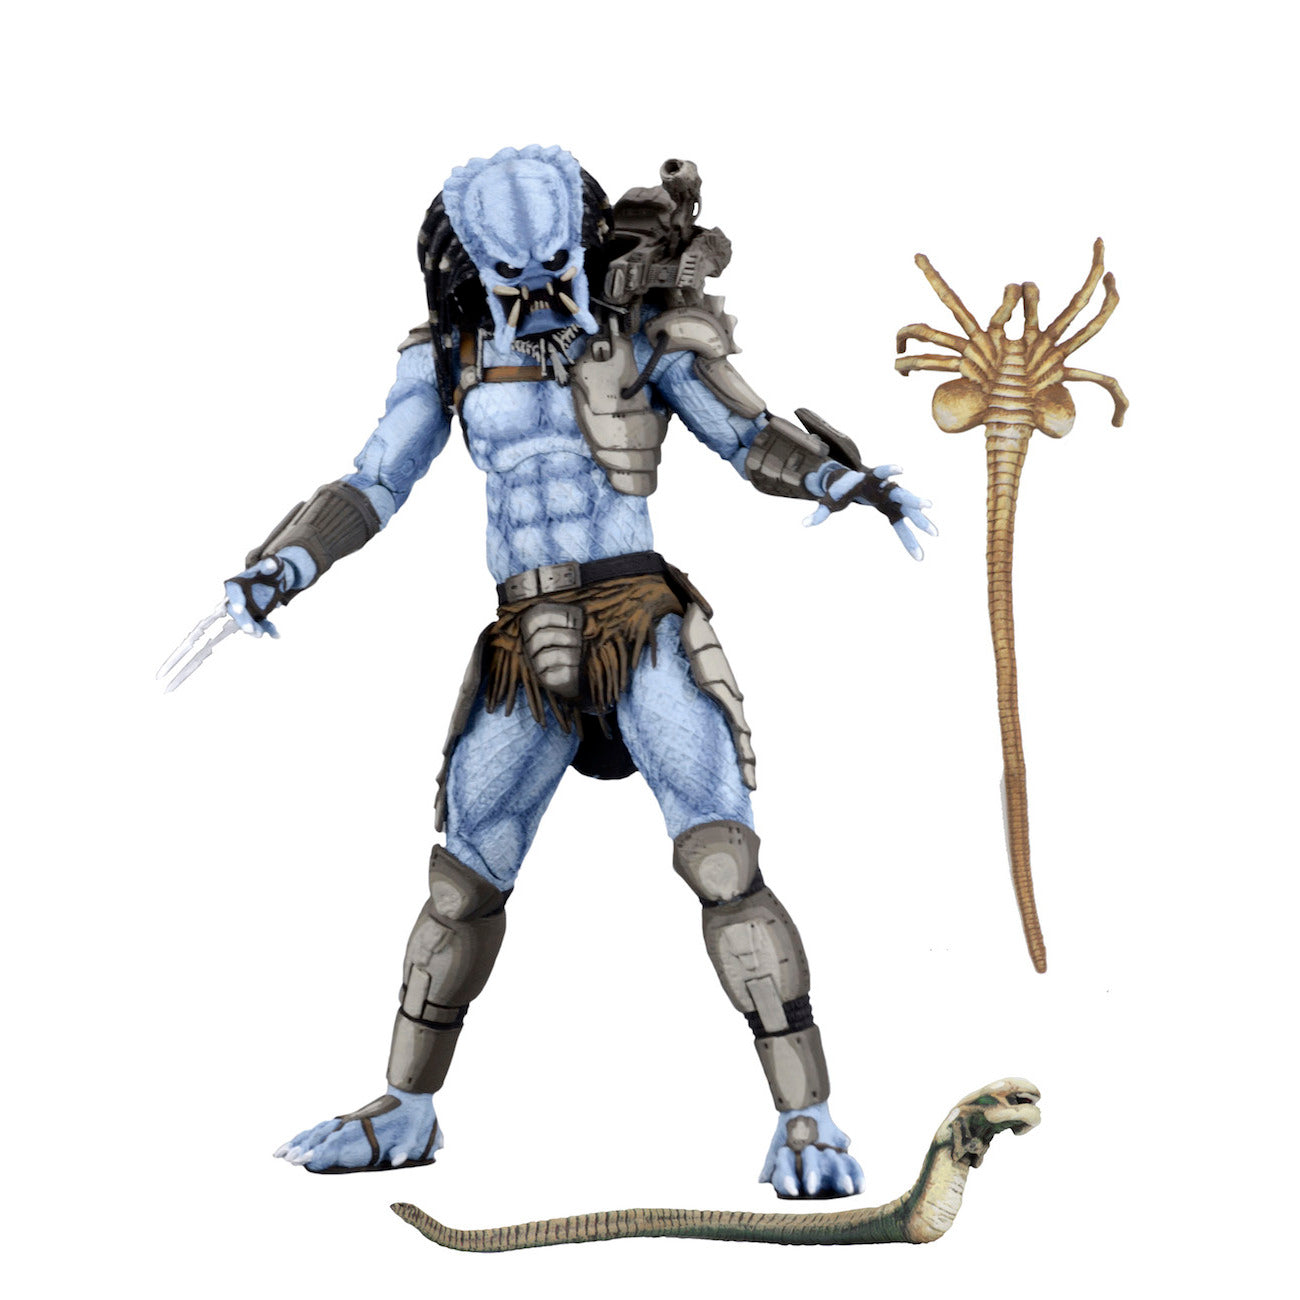 Alien vs. Predator Mad Predator 7 inch Scale Action Figure